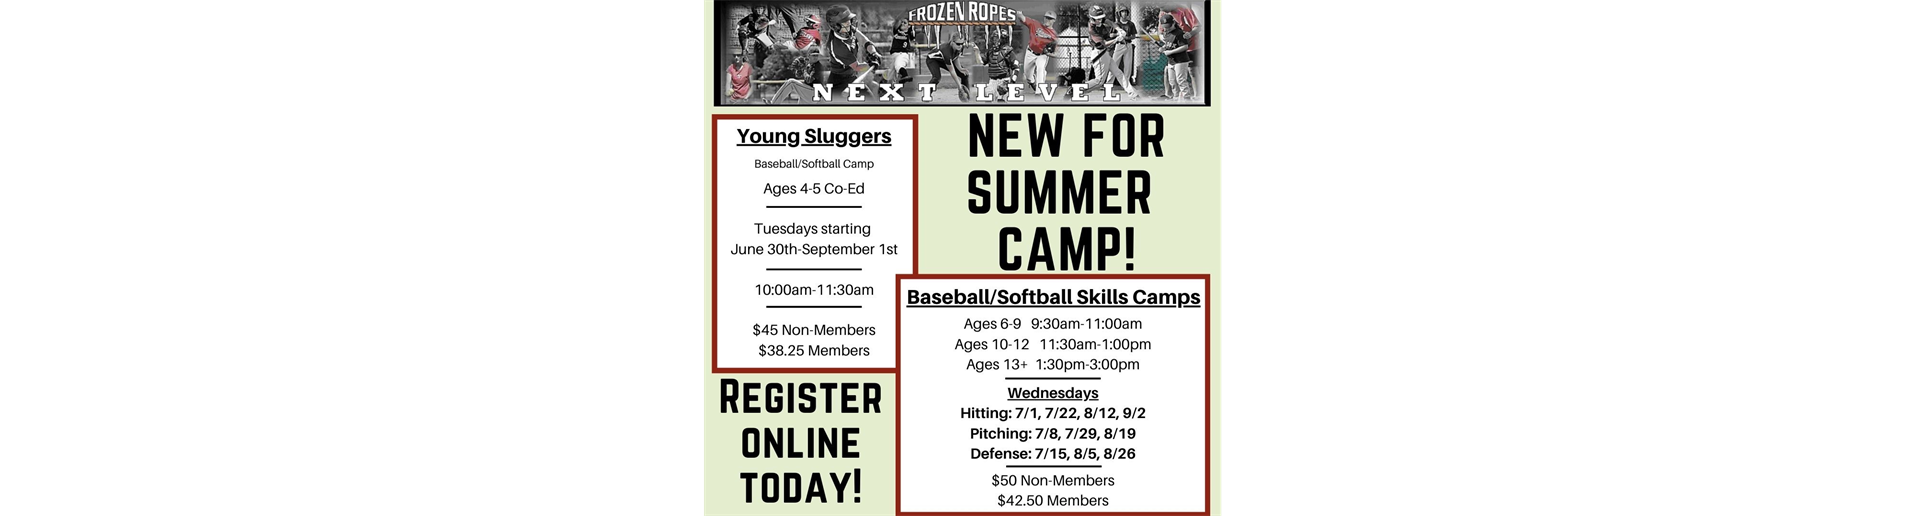 Frozen Ropes Summer Camp